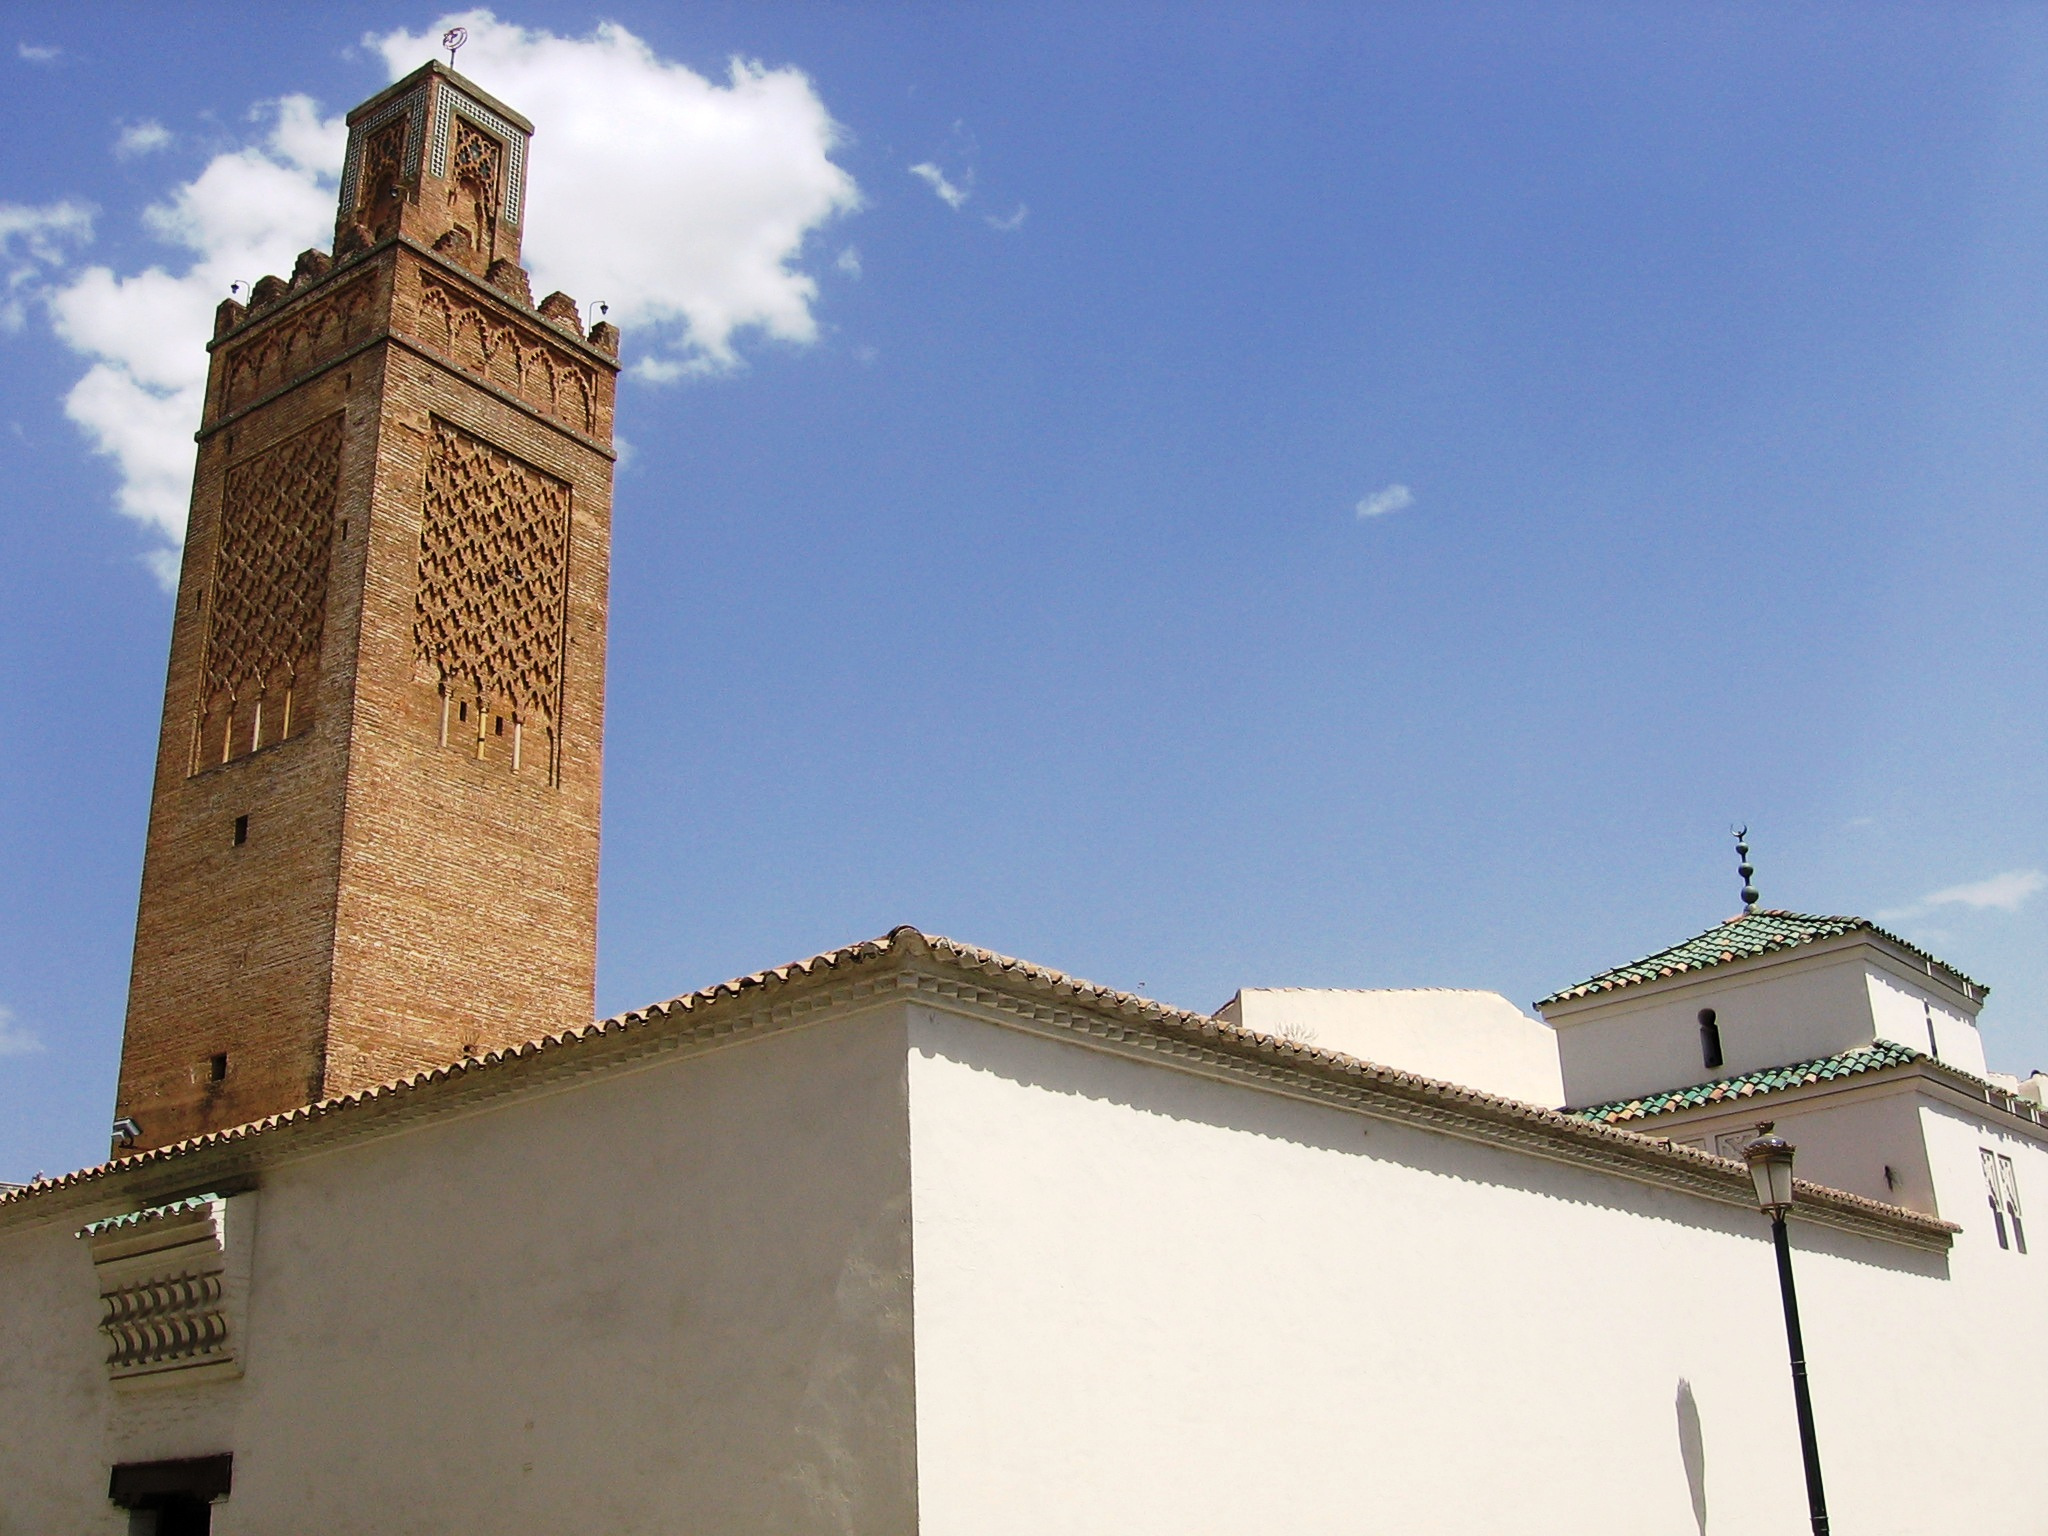 The Great Mosque of Tlemcen © lionel.viroulaud/Flickr